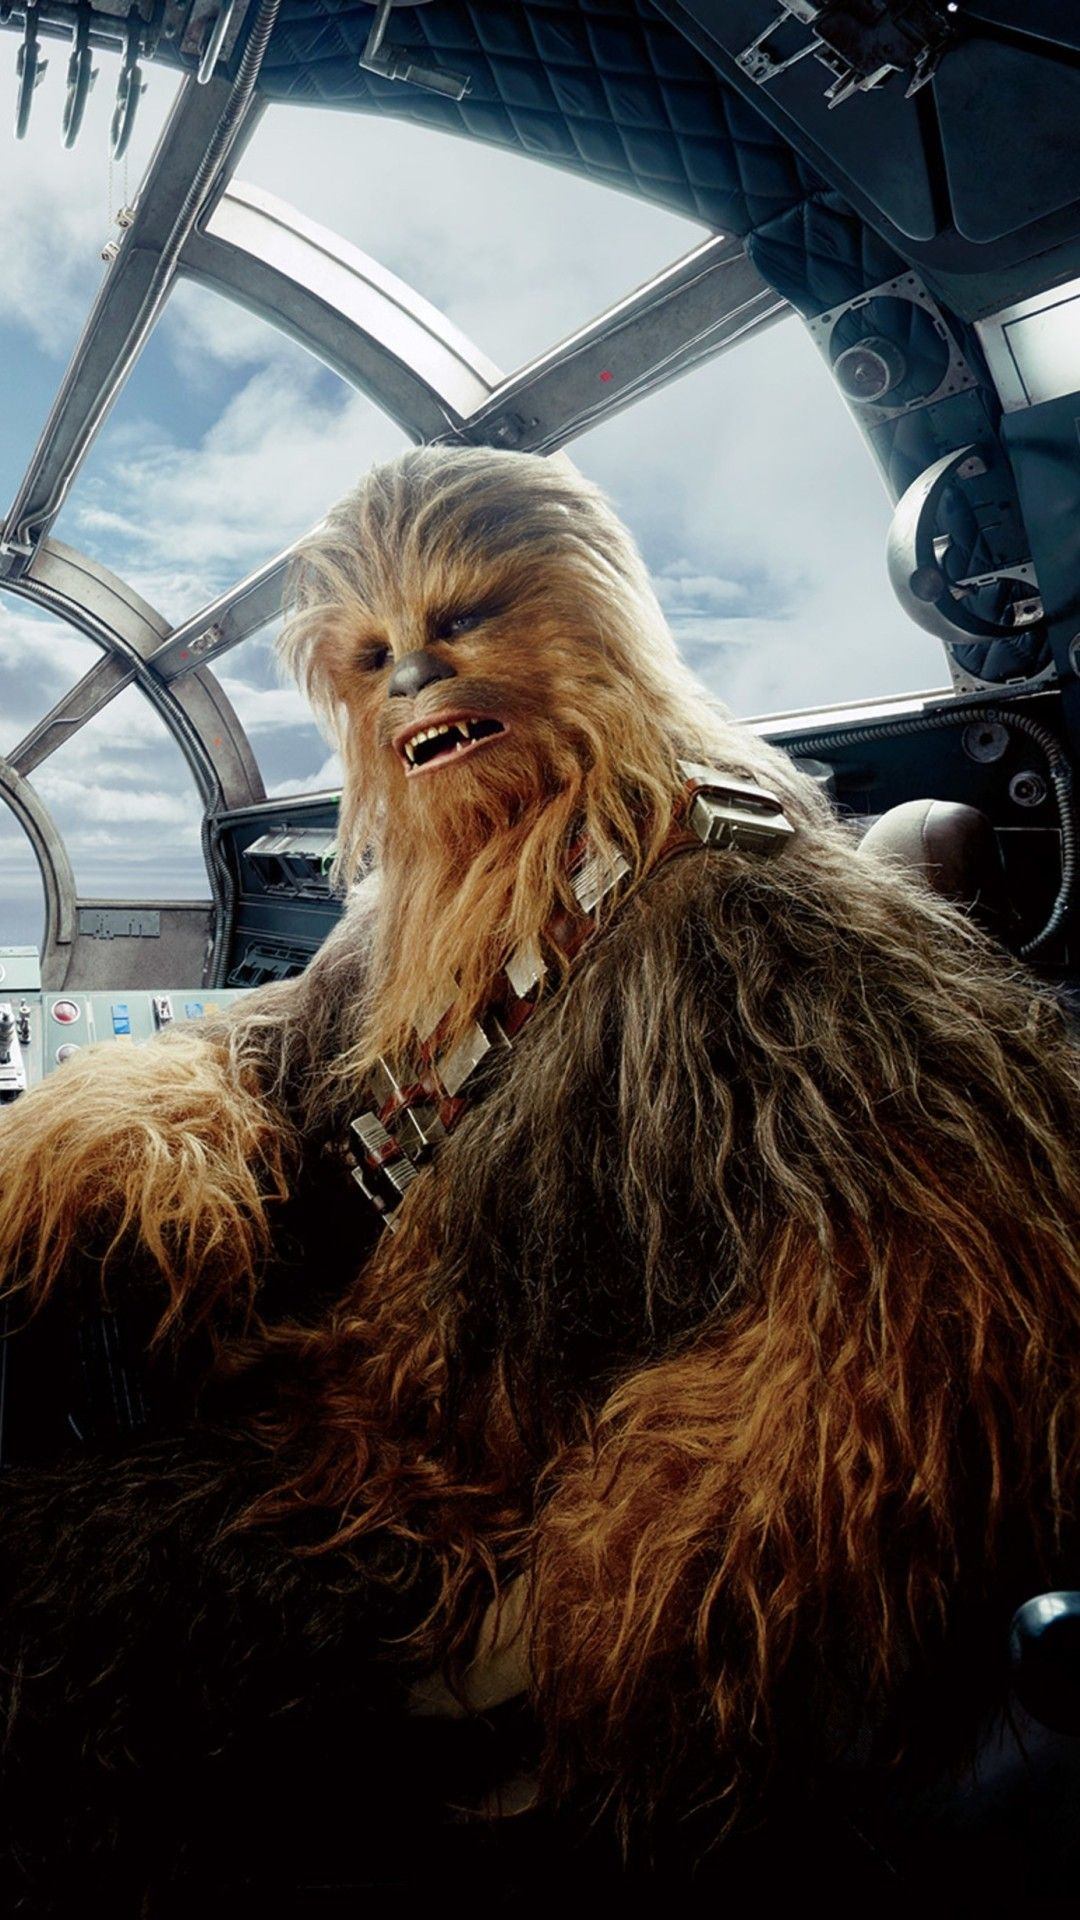 Chewbacca Wallpapers Top Free Chewbacca Backgrounds Wallpaperaccess